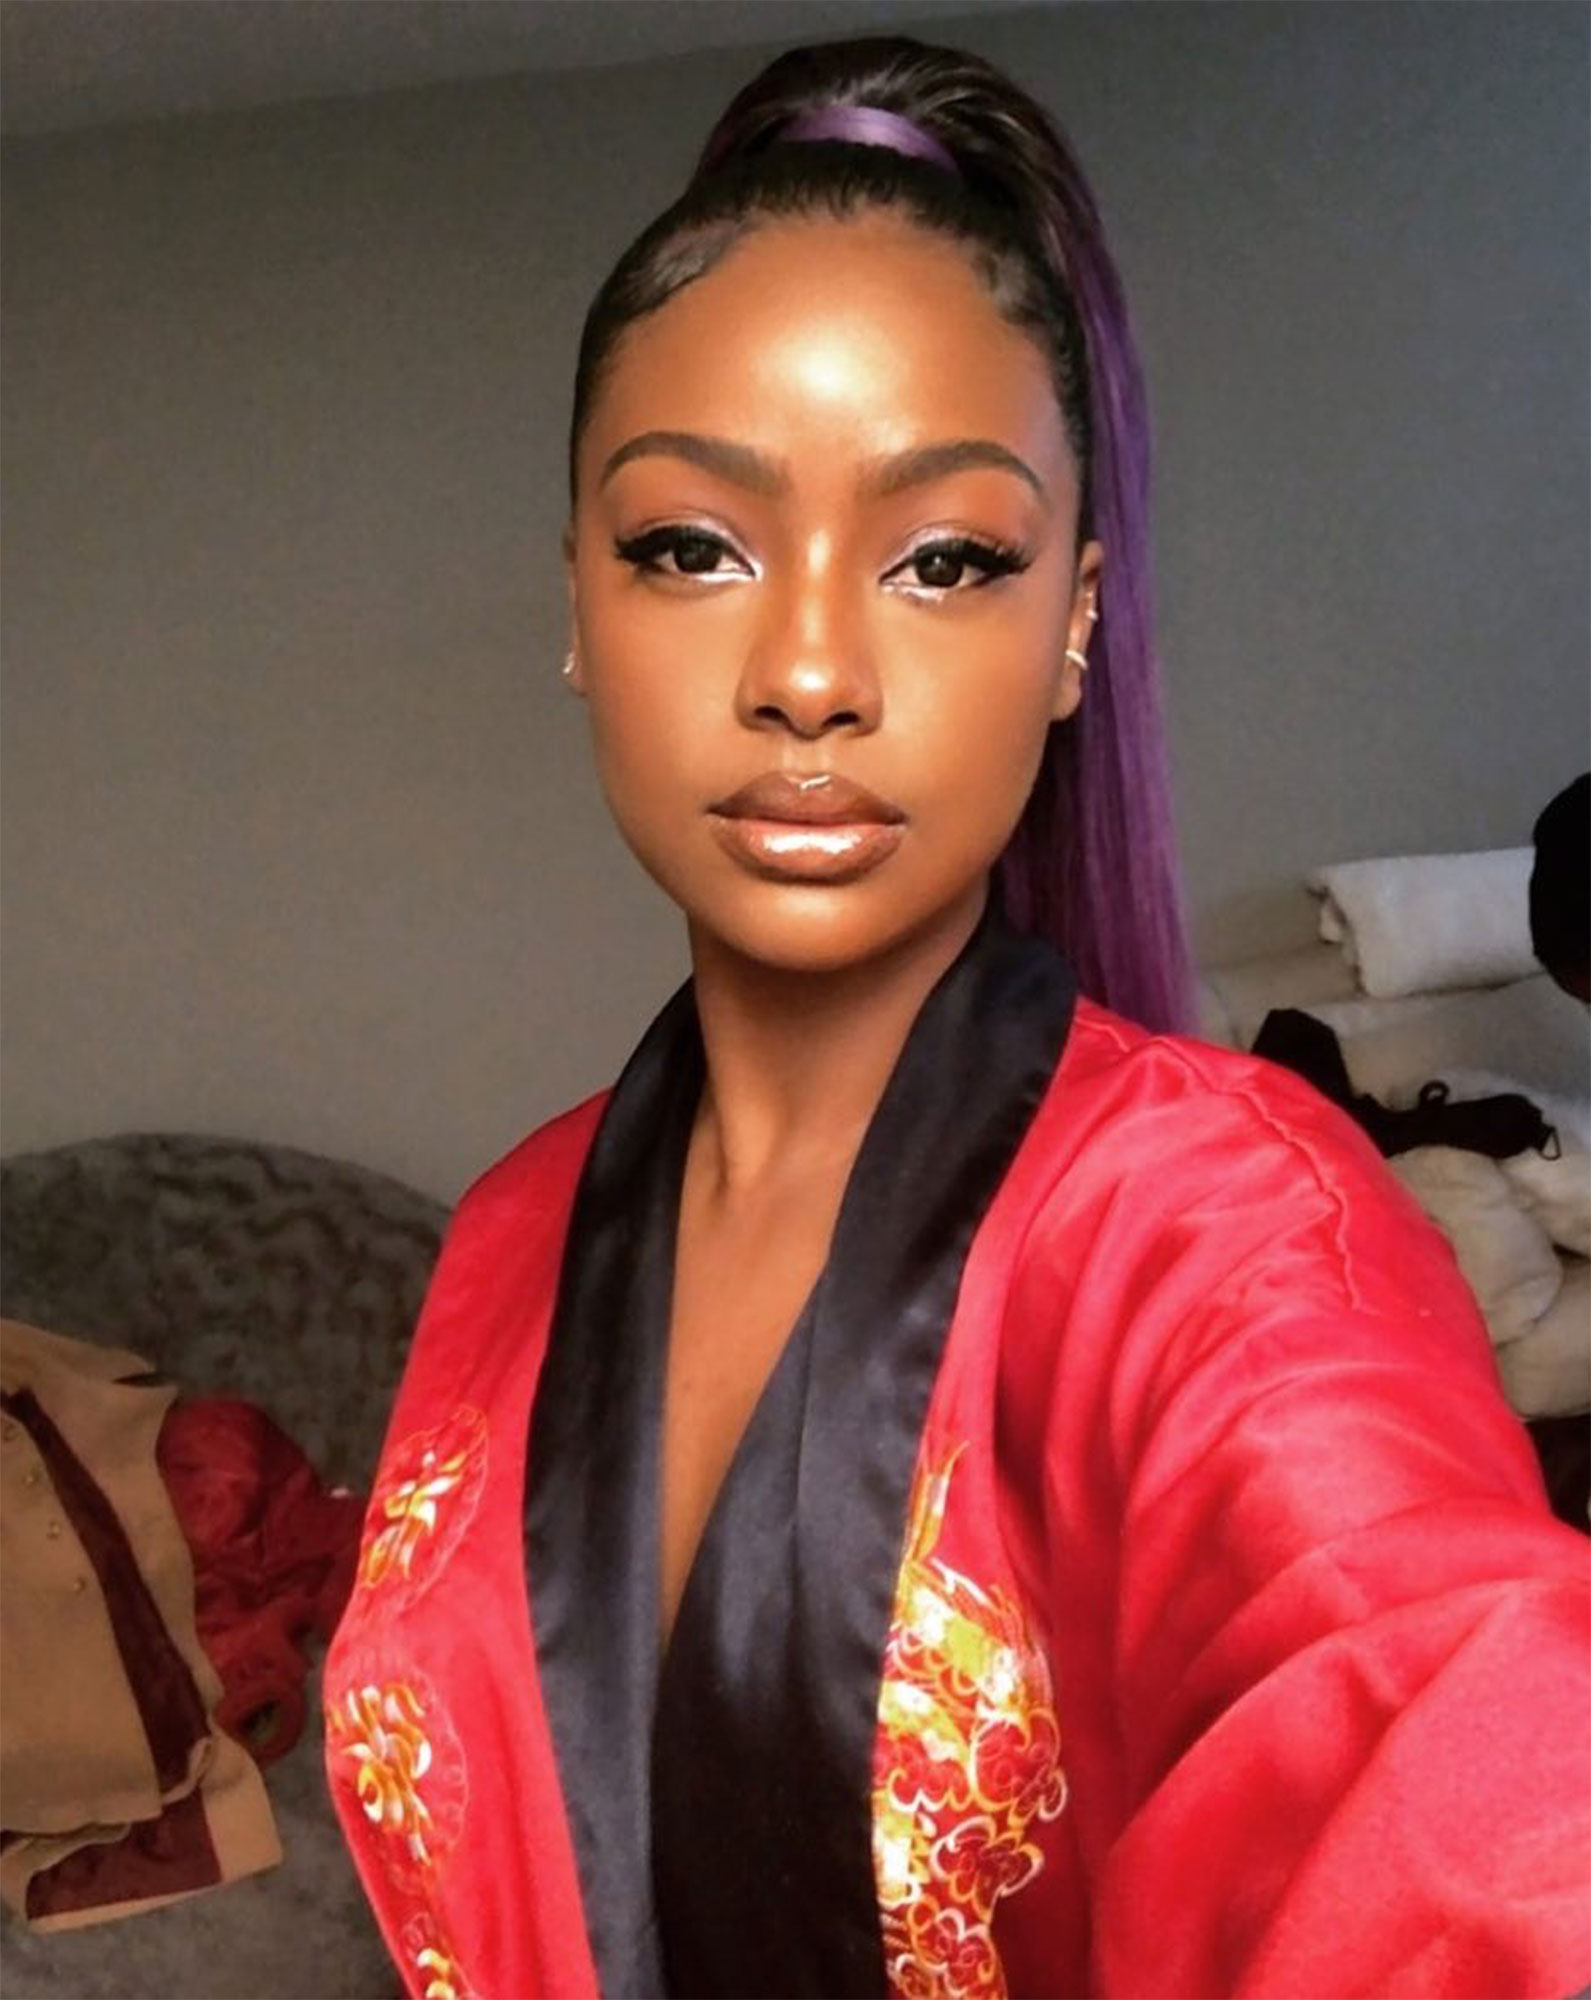 Fotos Justine Skye nude photos 2019